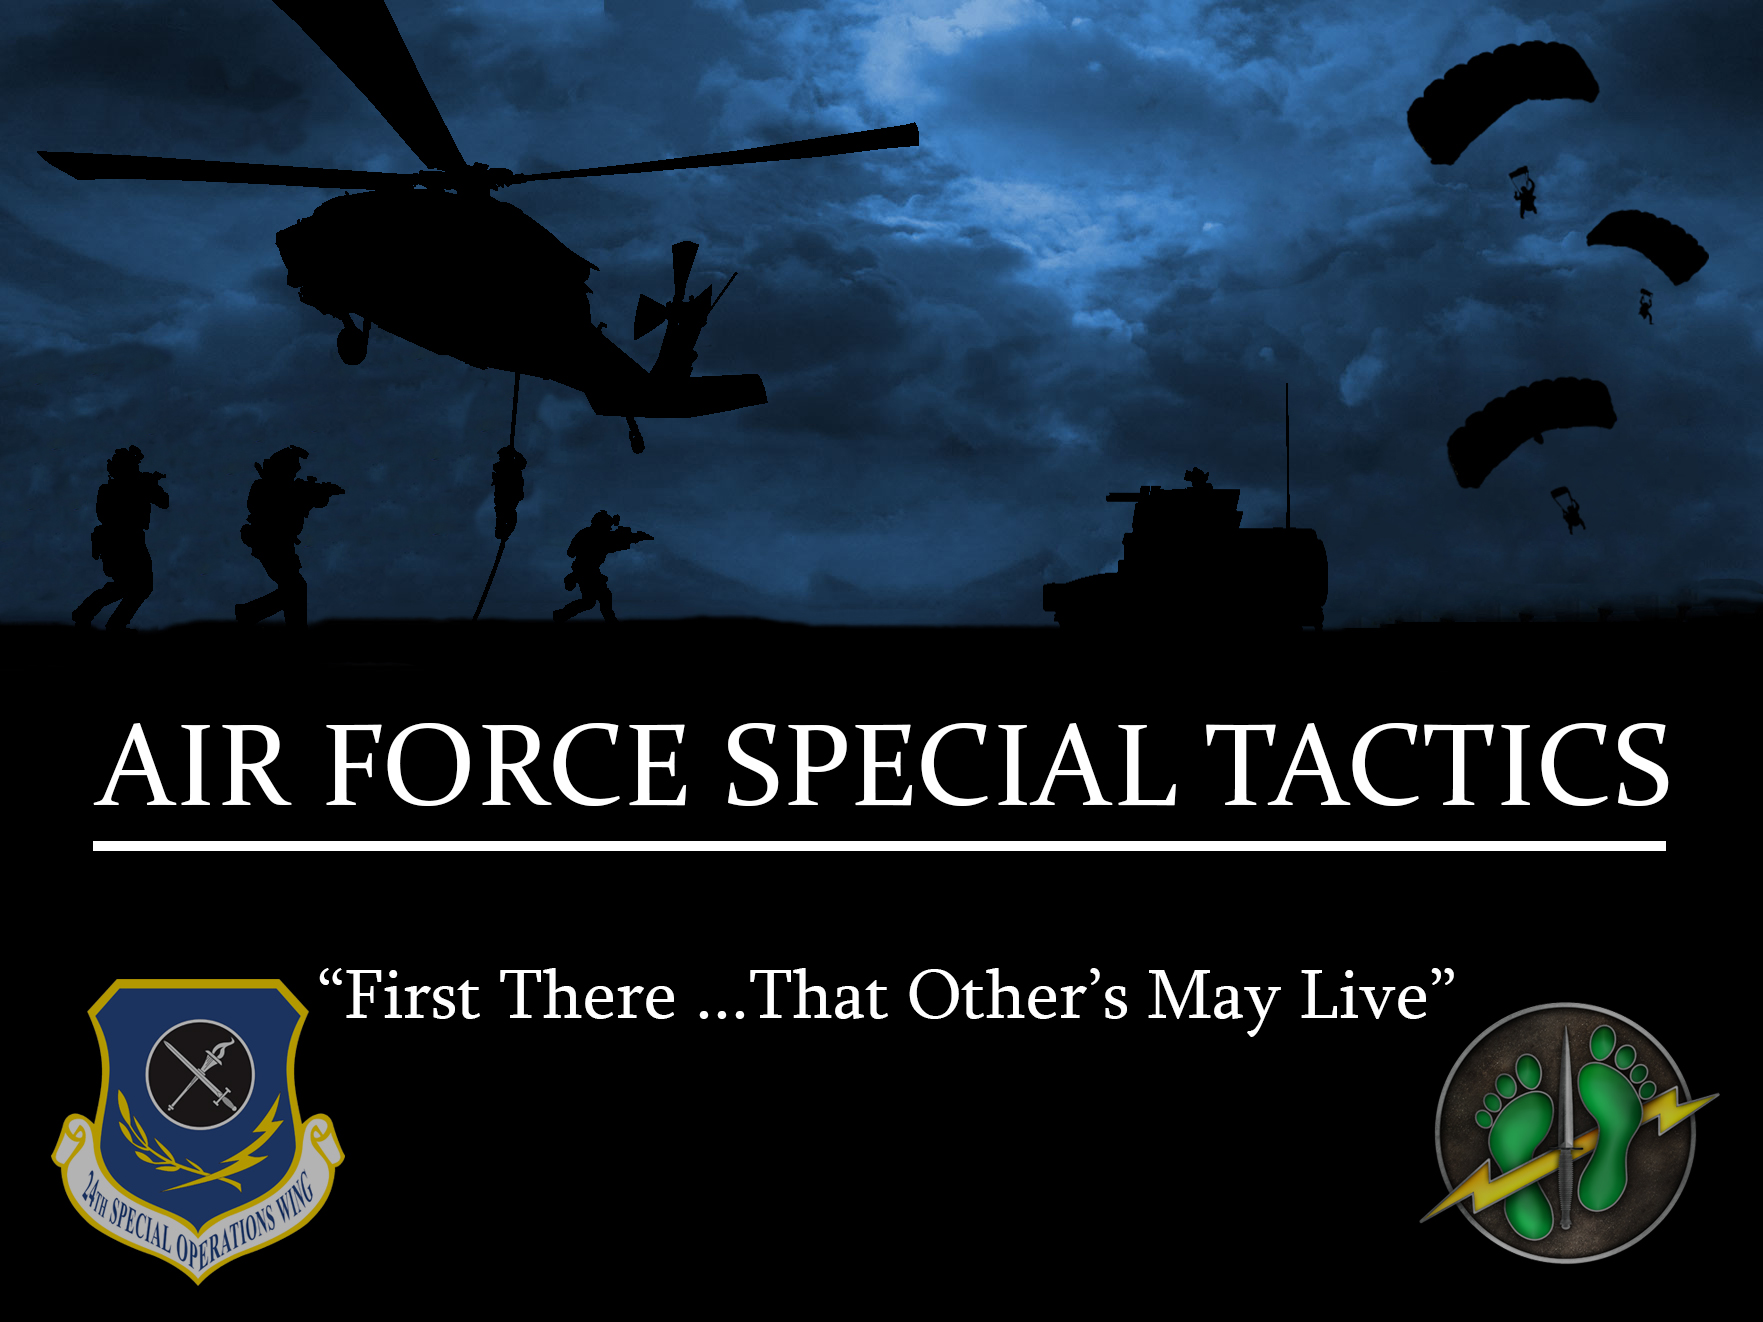 Air Force Special Tactics (24 SOW)